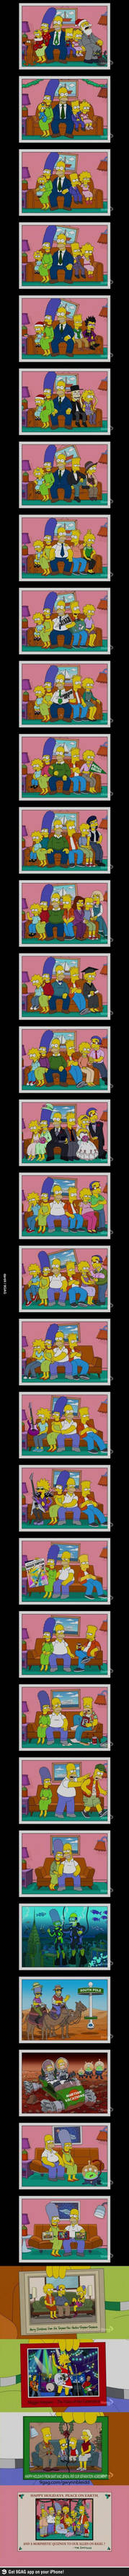 The Simpsons- A Christmas Family Photo?